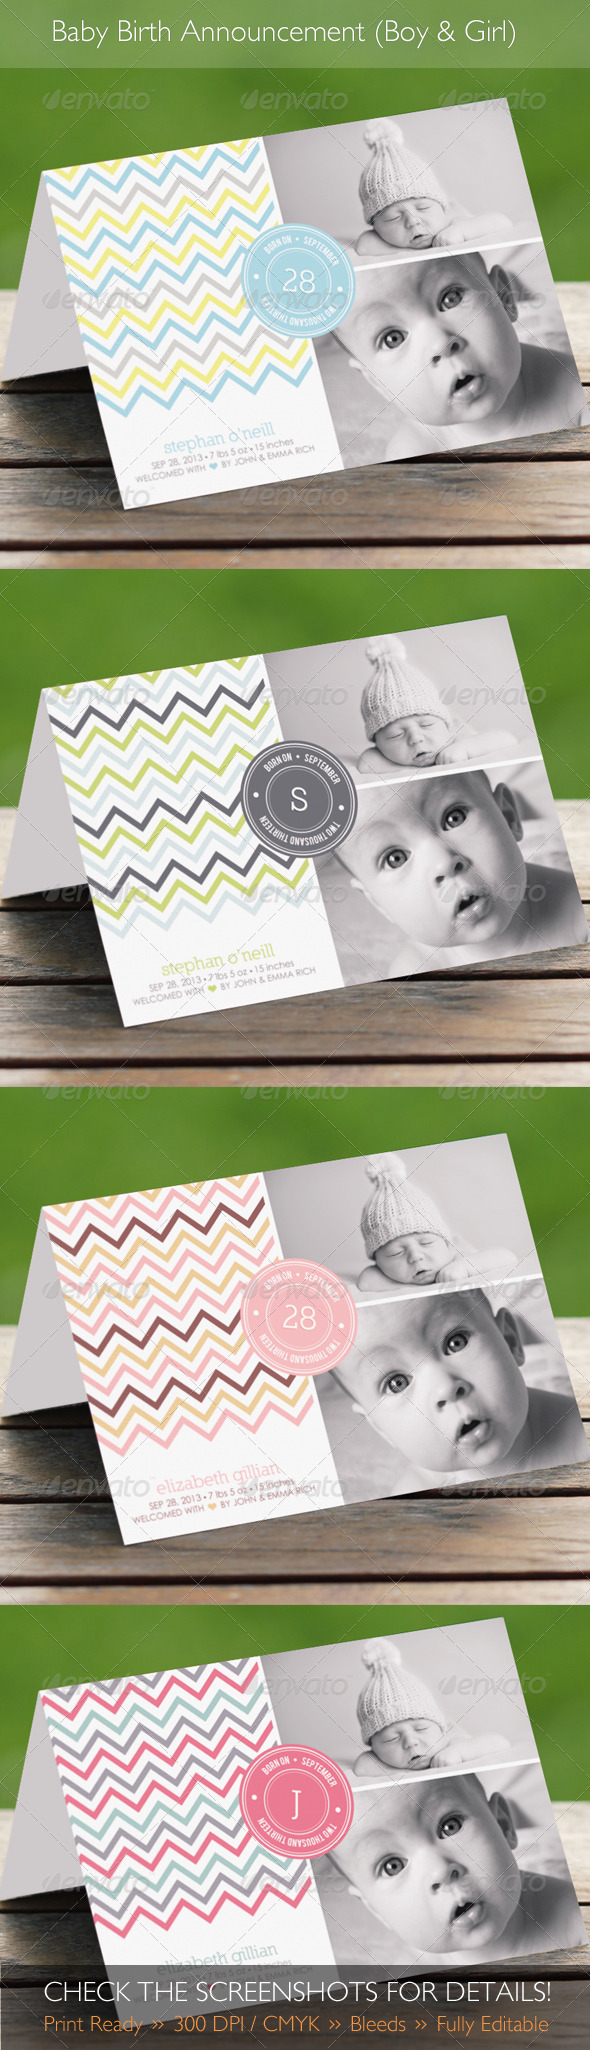 GraphicRiver Baby Birth Announcement Boy & Girl 2 4288097